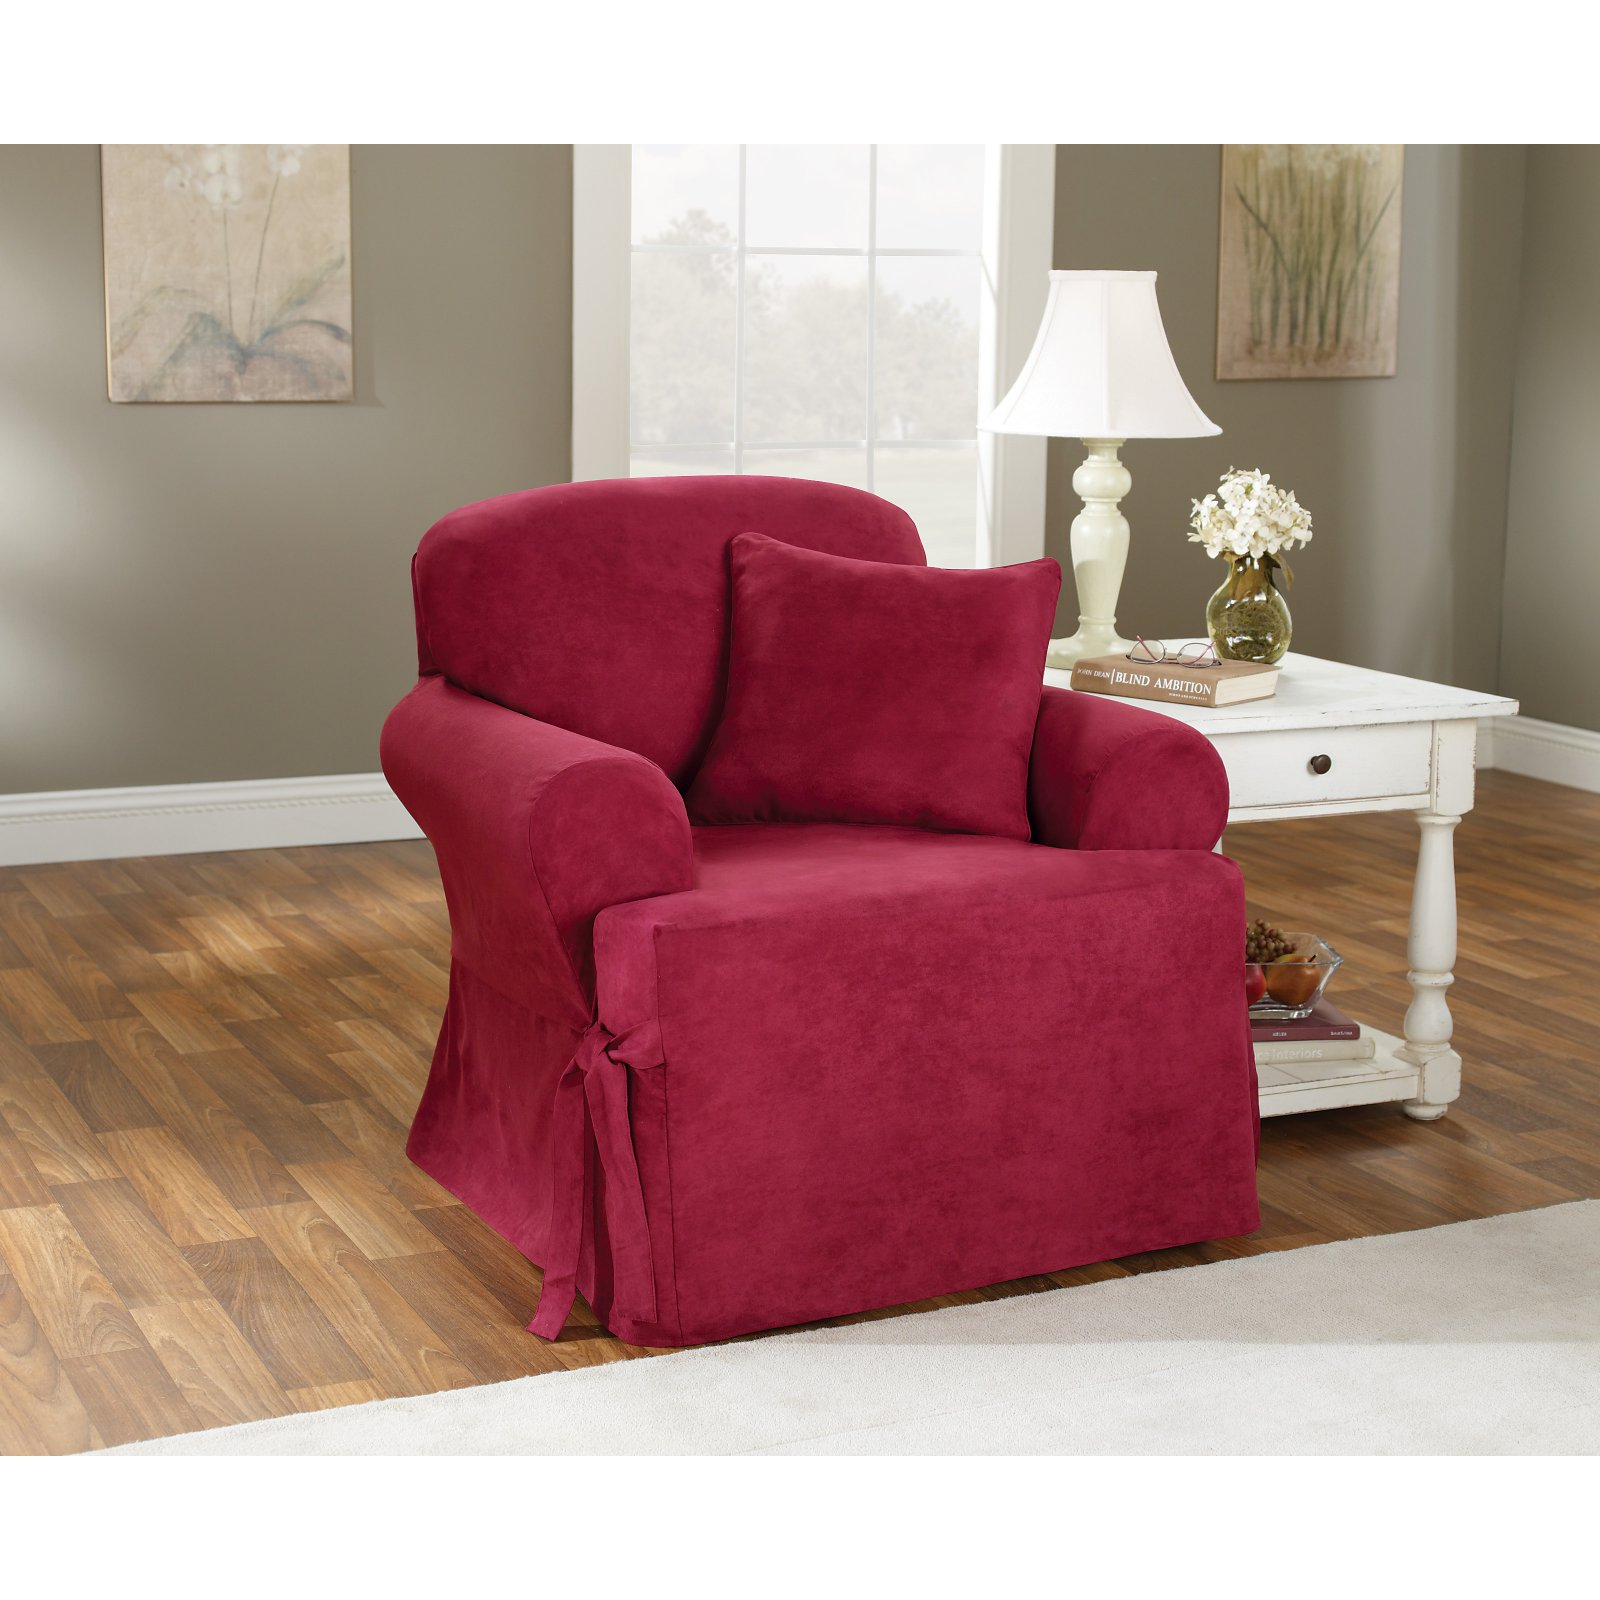 Exceptionnel Sure Fit Soft Suede T Cushion Chair Slipcover   Walmart.com